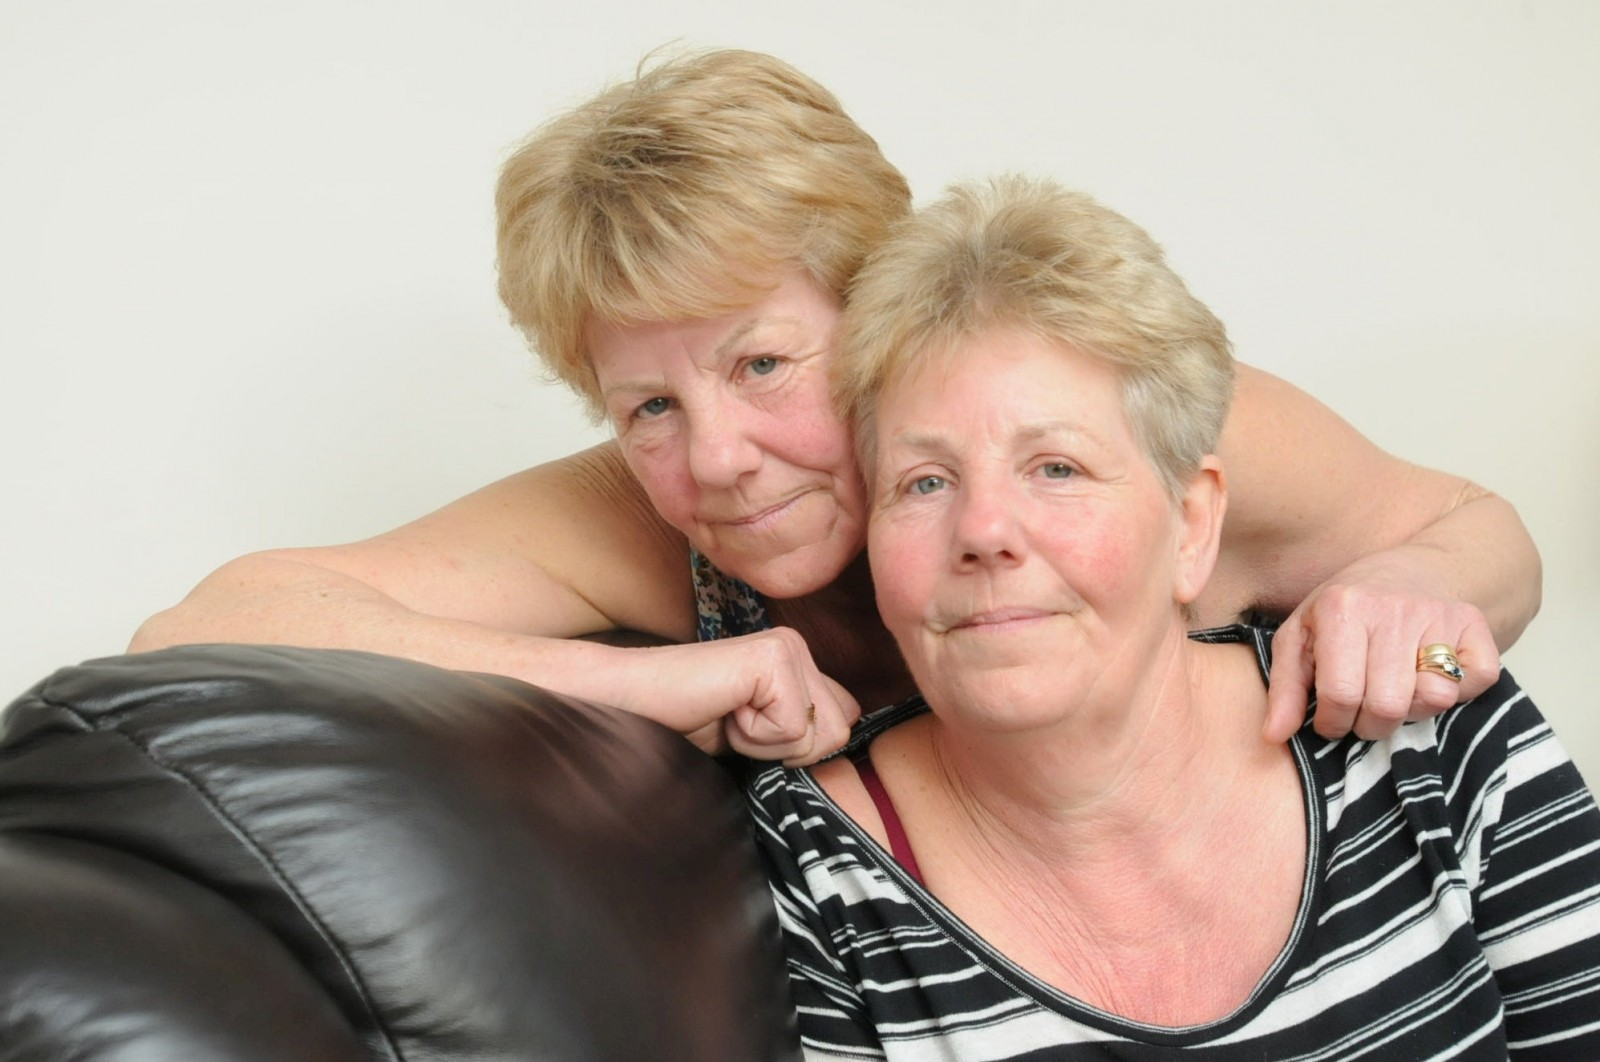 Identical twins Lynda and Ann are supporting each other through this difficult time